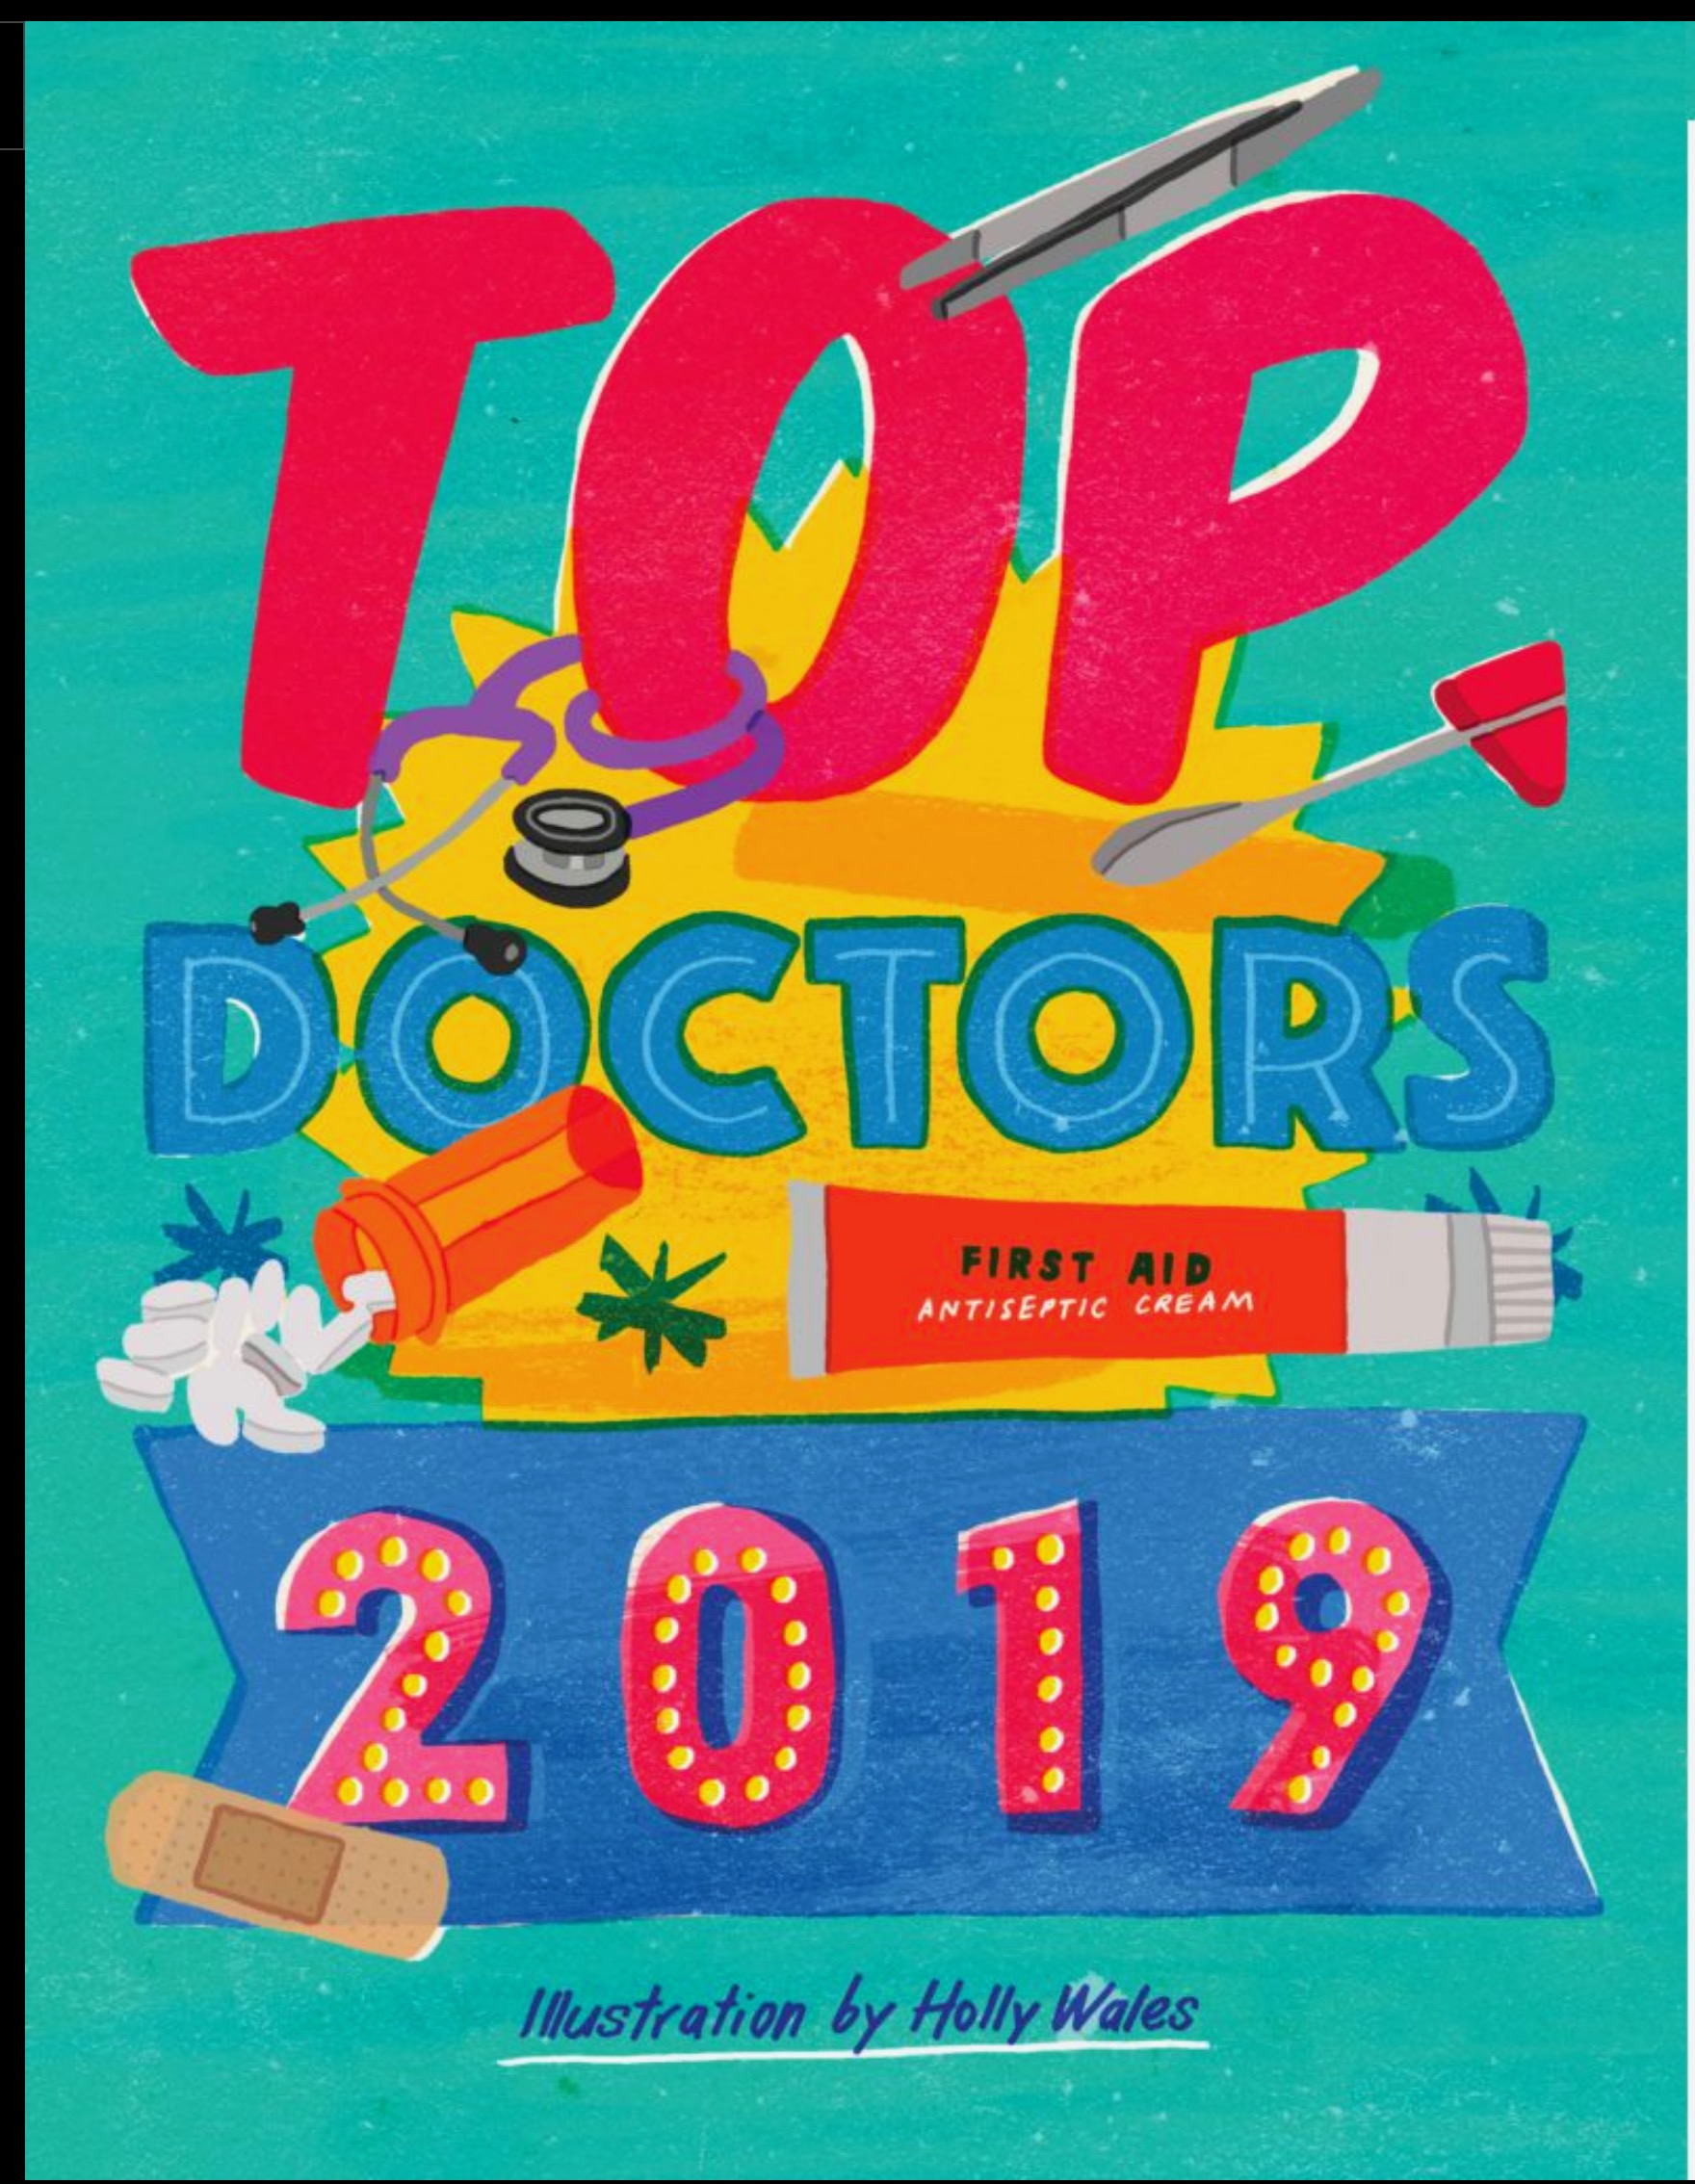 Top Doctor Award, Sinus & Snoring Specialists